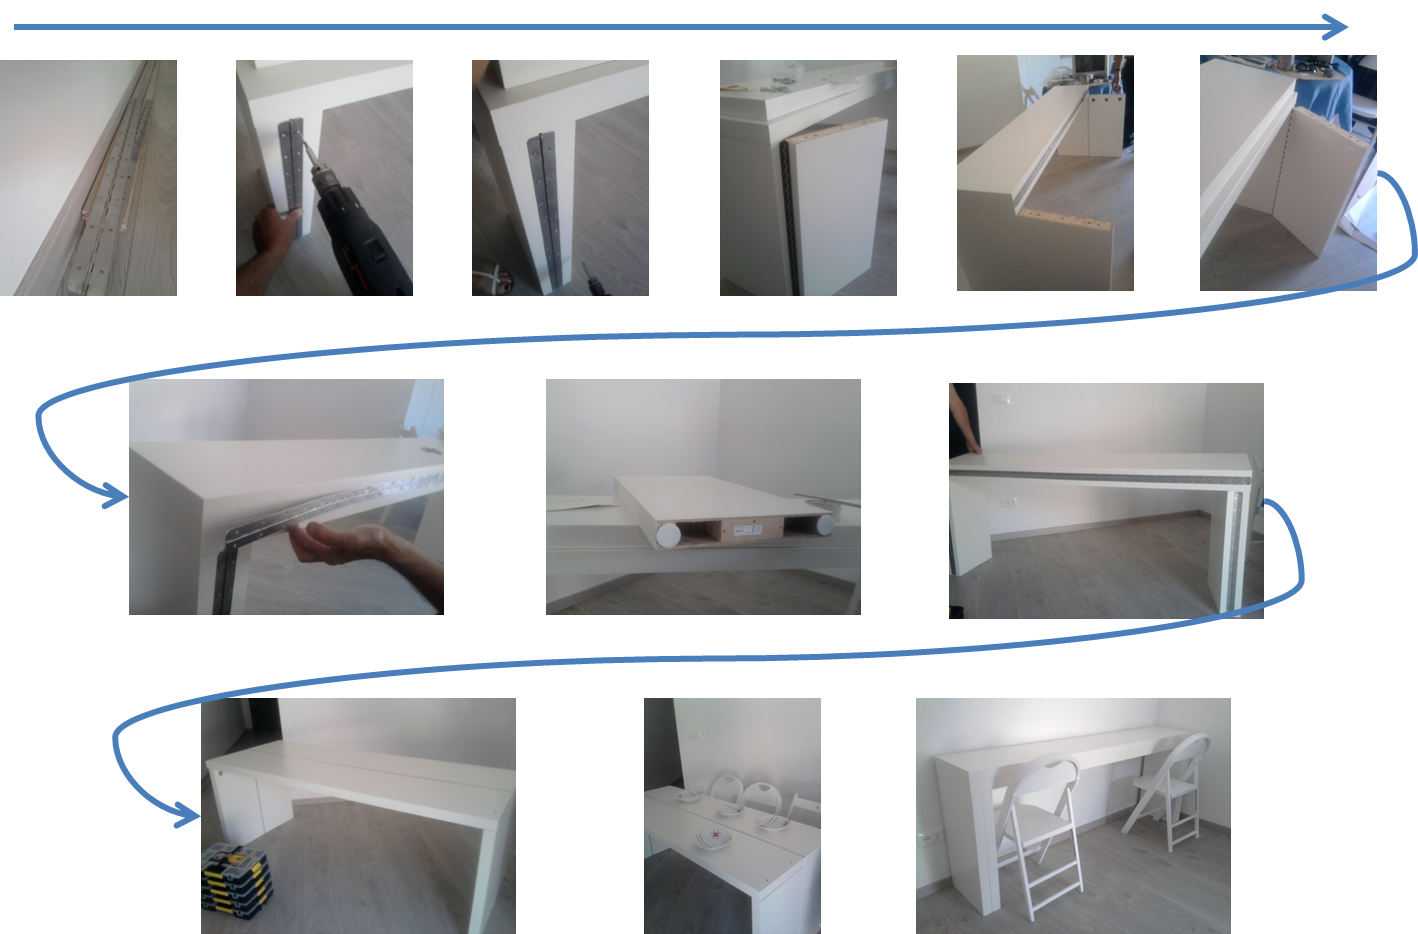 Take The Spare Legs Of The Second Malm And Join Them With The Legs Of The  Already Built Up Table, Through The Hinge Screwed In On The Long Side;